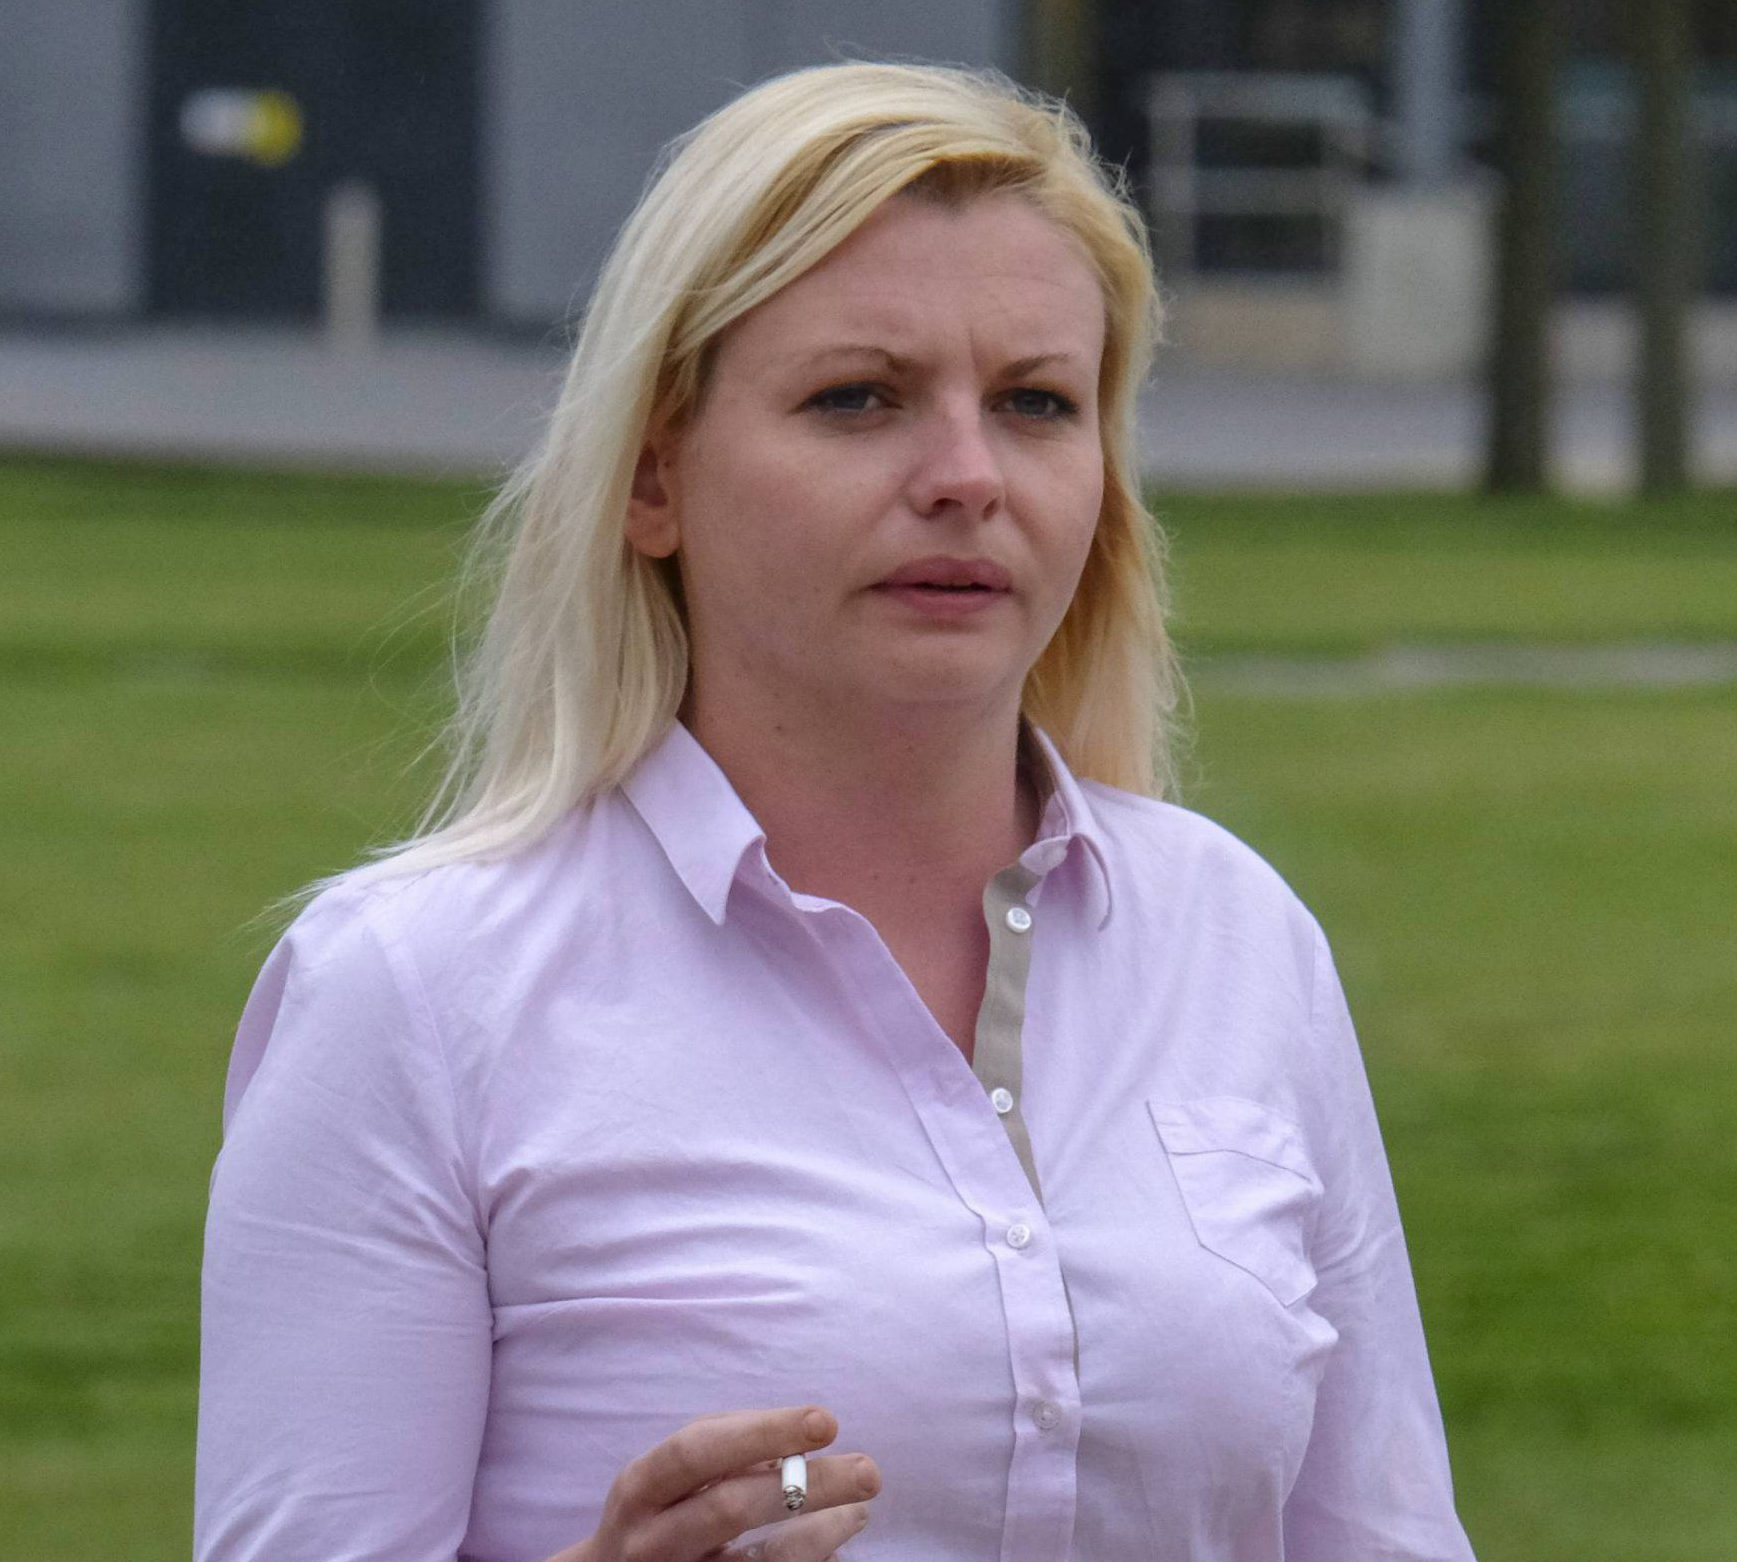 Dated: 08/06/2018 Sarah Bramley arrives at Teesside Crown Court this morning (FRI), where she pleaded not guilty to incitement in relation to the murder of Michael Lawson, for which Bramley's former boyfriend David Saunders was convicted last December. She will stand trial in October. SEE VIDEO & COPY FROM NORTH NEWS